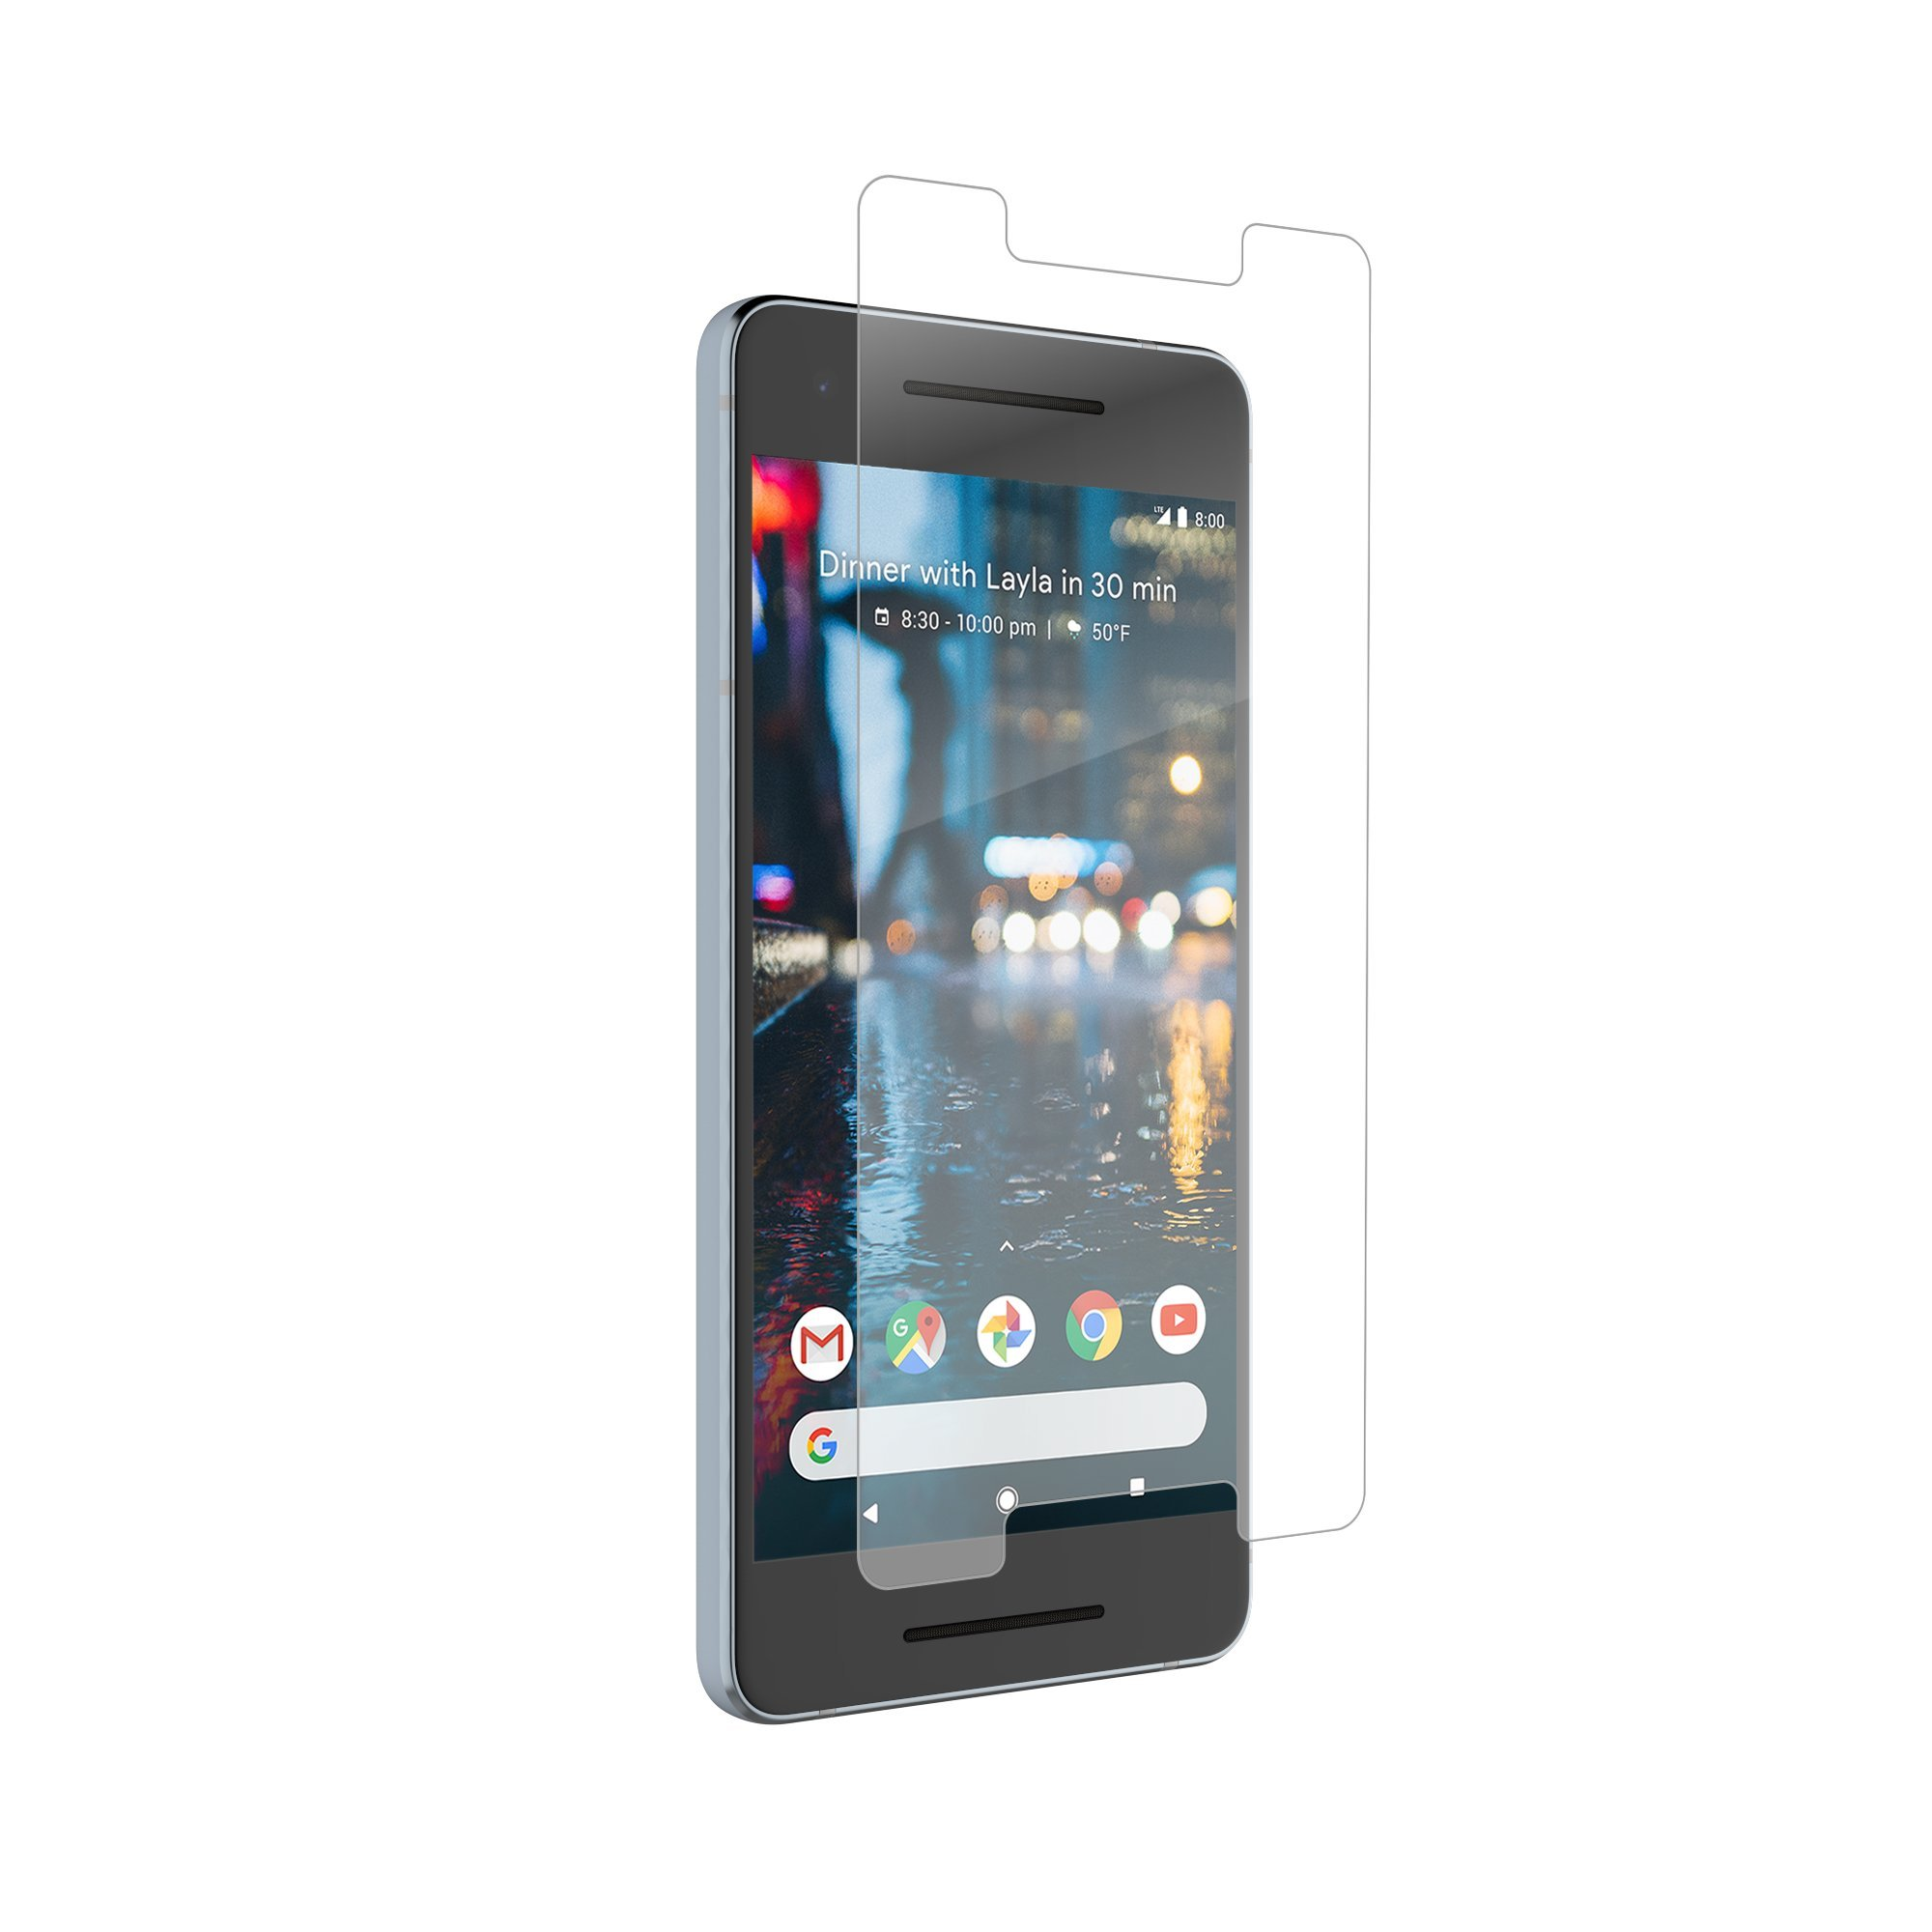 ZAGG Invisible Shield Glass+ Screen Protector -Fits Google Pixel 2 -Extreme Impact & Scratch Protection - Easy to Apply - Clear by Zagg